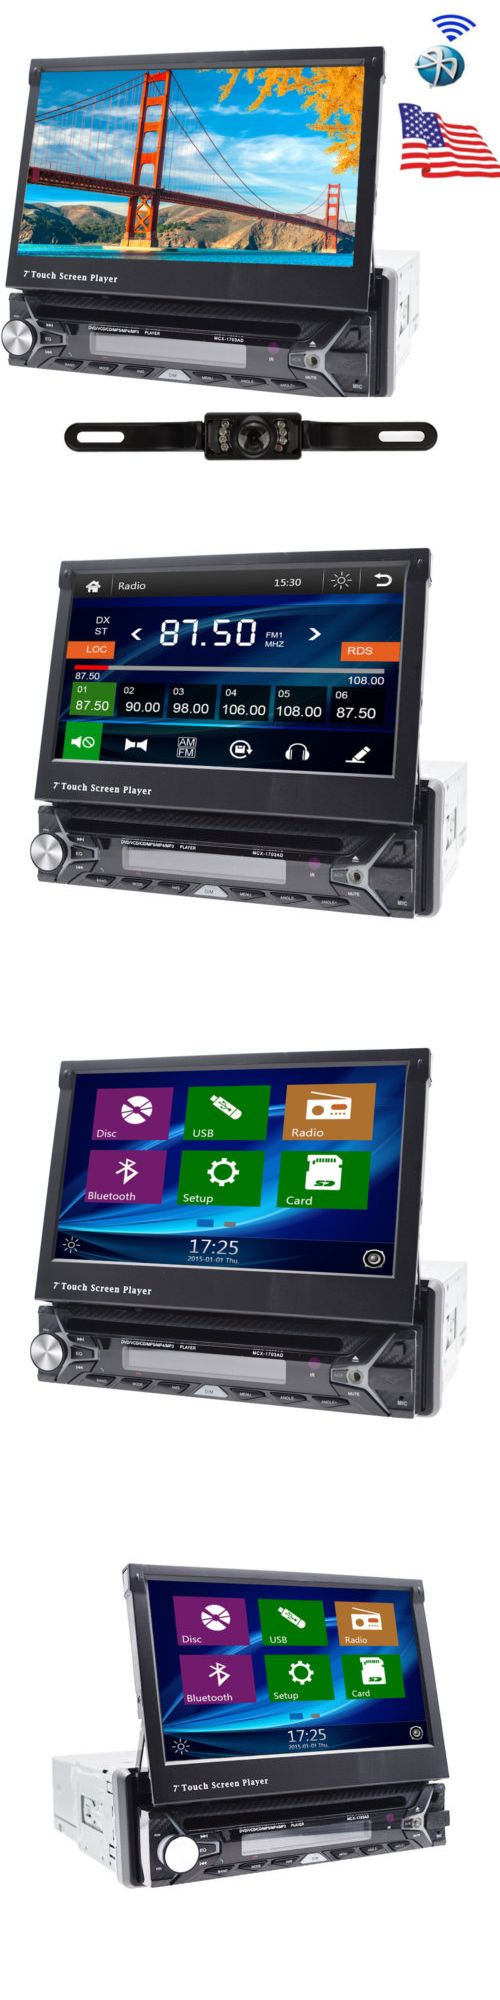 Vehicle Electronics And GPS: Single 1 Din 7 Hd Gps Nav Car Stereo Cd Dvd Mp3 Player Radio +Camera Bluetooth -> BUY IT NOW ONLY: $145.99 on eBay!